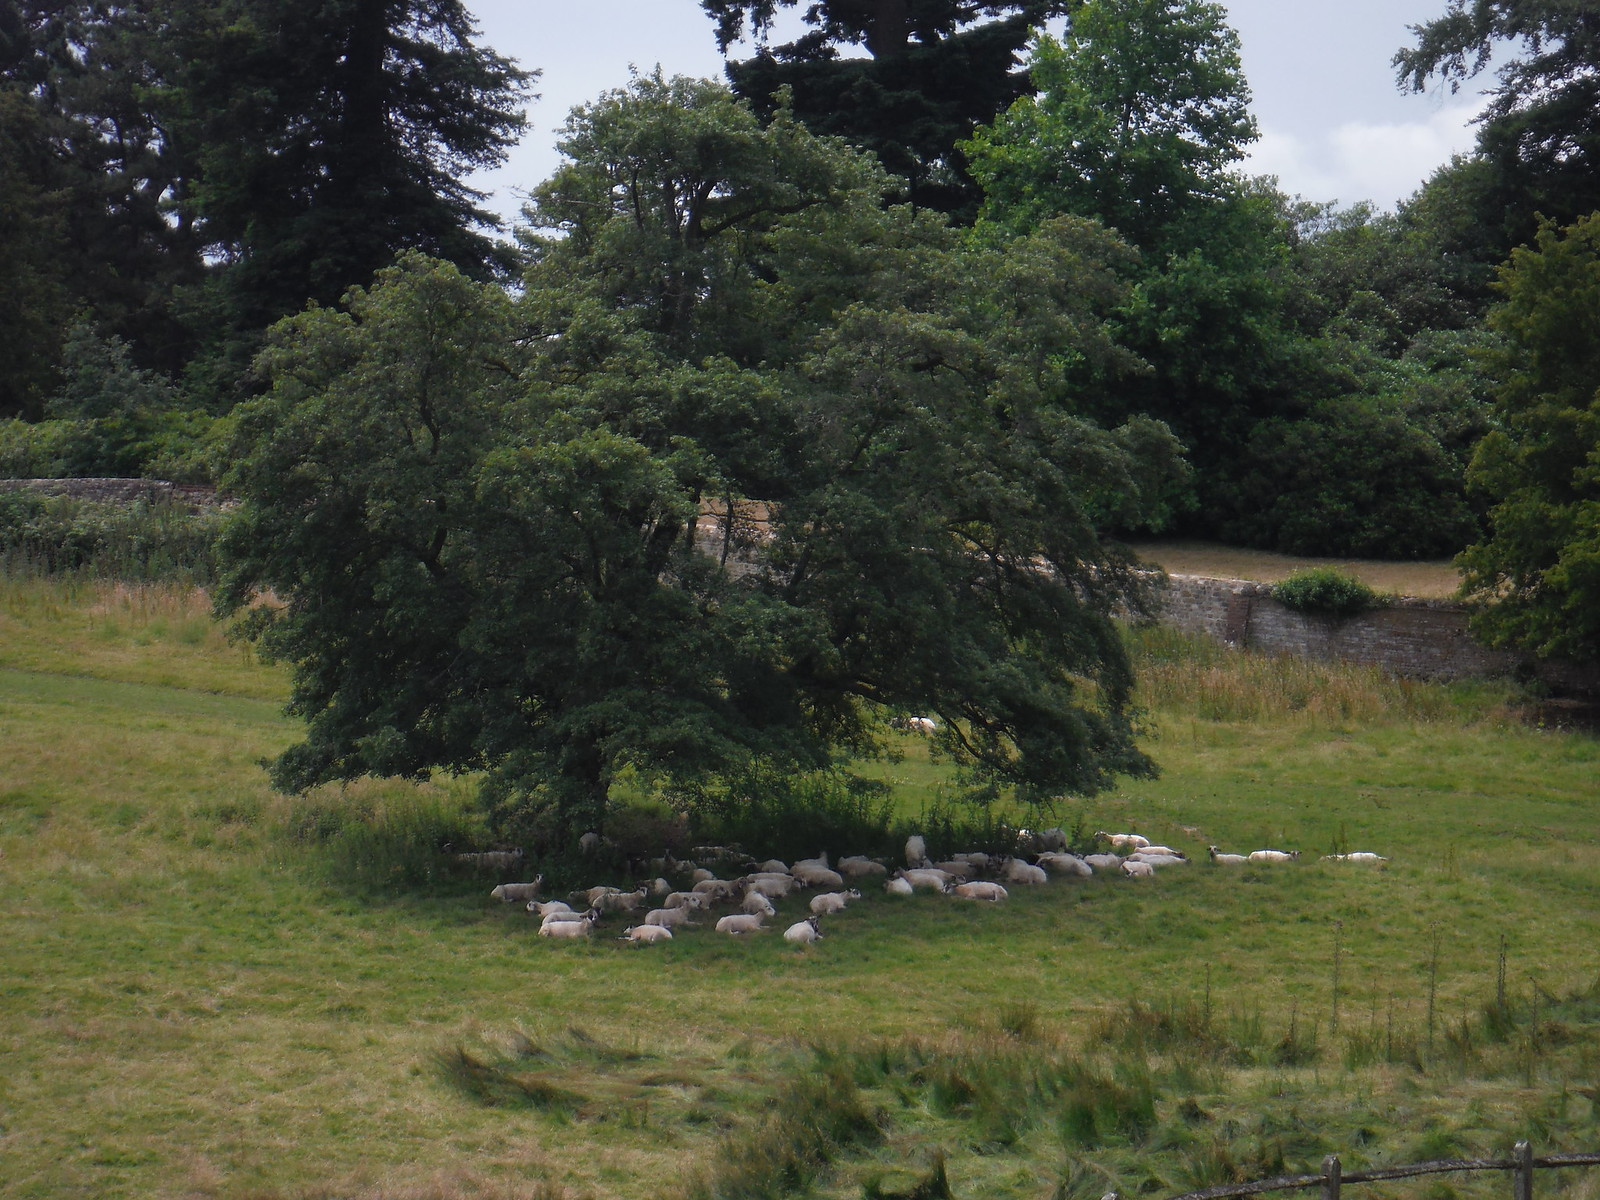 Sheep under Tree, Blackdown Park Estate SWC Walk 48 Haslemere to Midhurst (via Lurgashall or Lickfold)